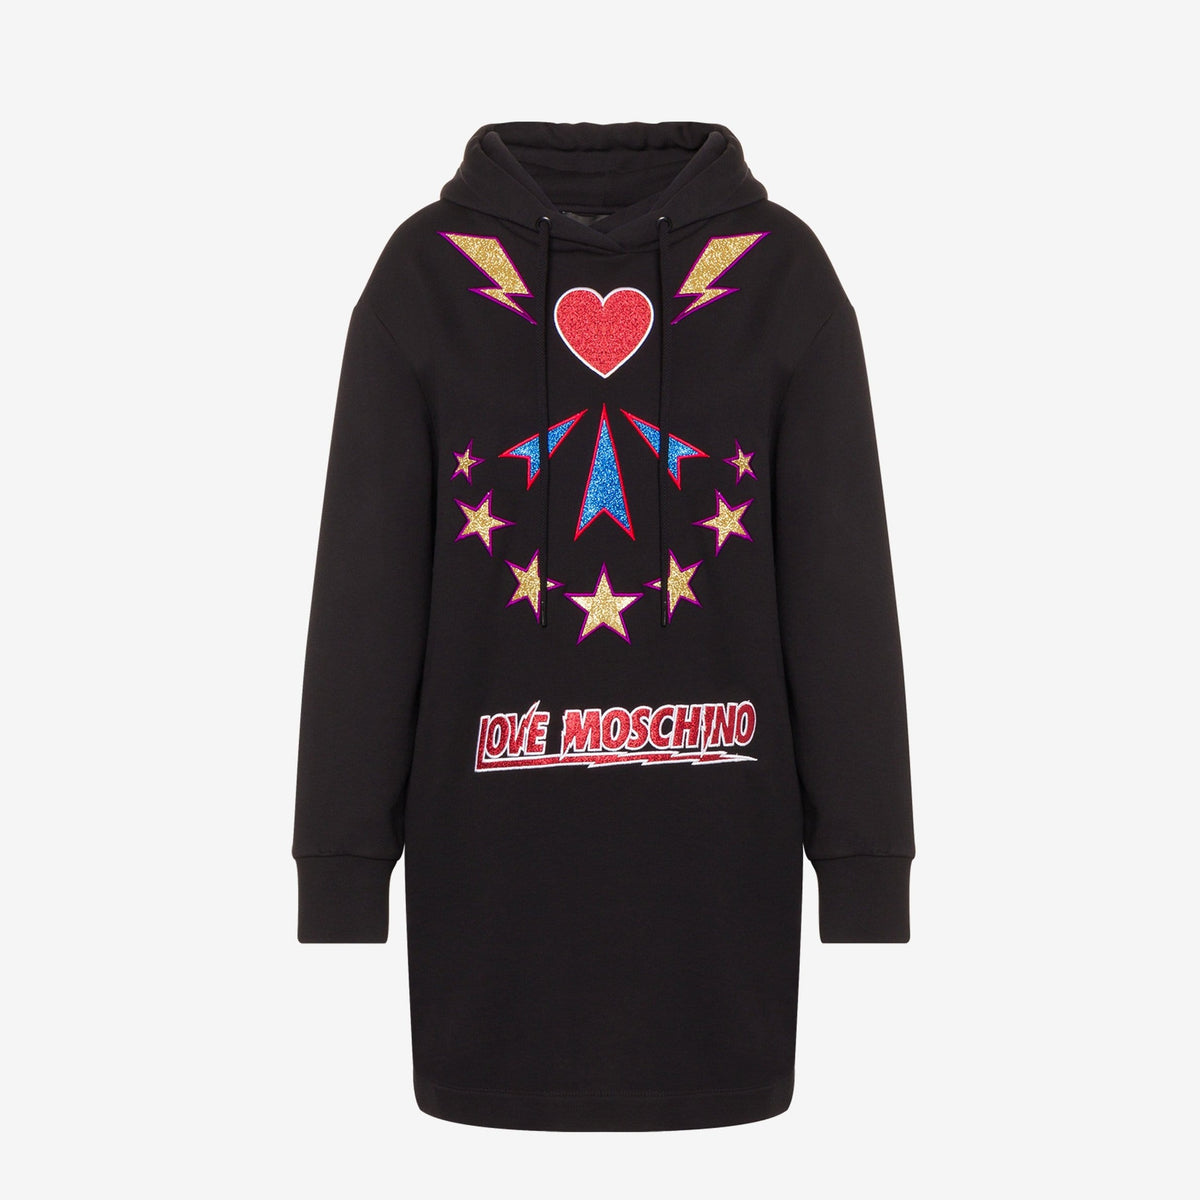 Love Moschino Ladies Sparkling Embroidery Jumper Dress